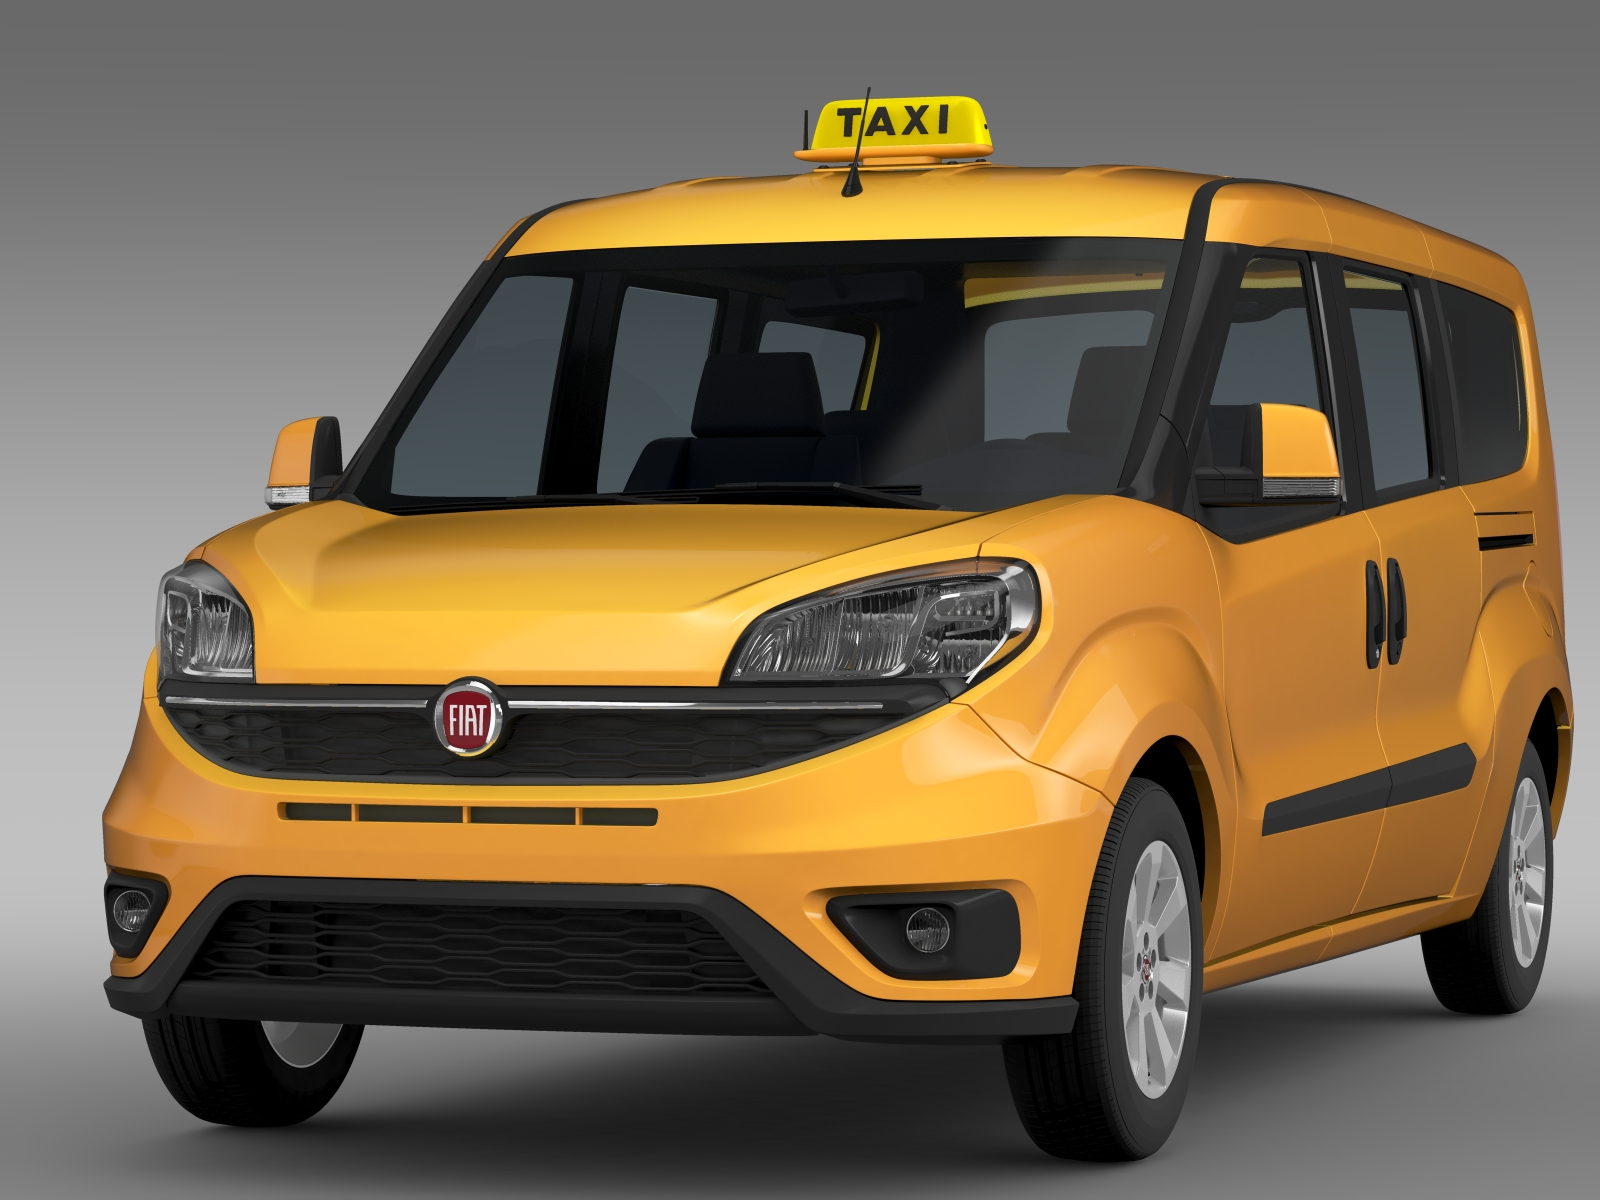 fiat doblo maxi taxi 152 2015 3d model buy fiat doblo. Black Bedroom Furniture Sets. Home Design Ideas